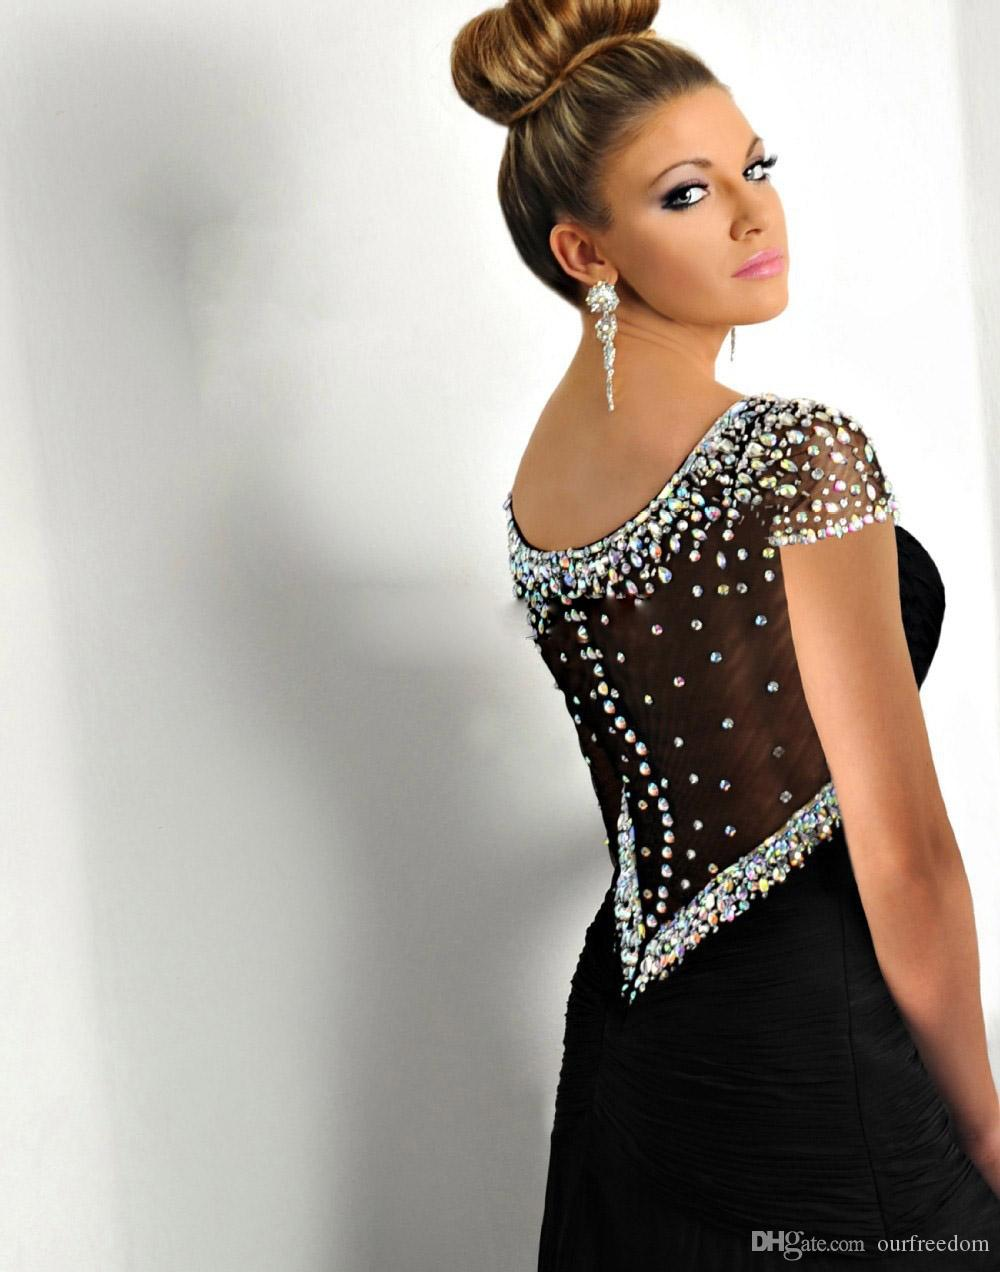 Formal Evening Dresses 2019 With Mermaid Scoop Crystal Side Slit Prom Party Gowns See Though Backless